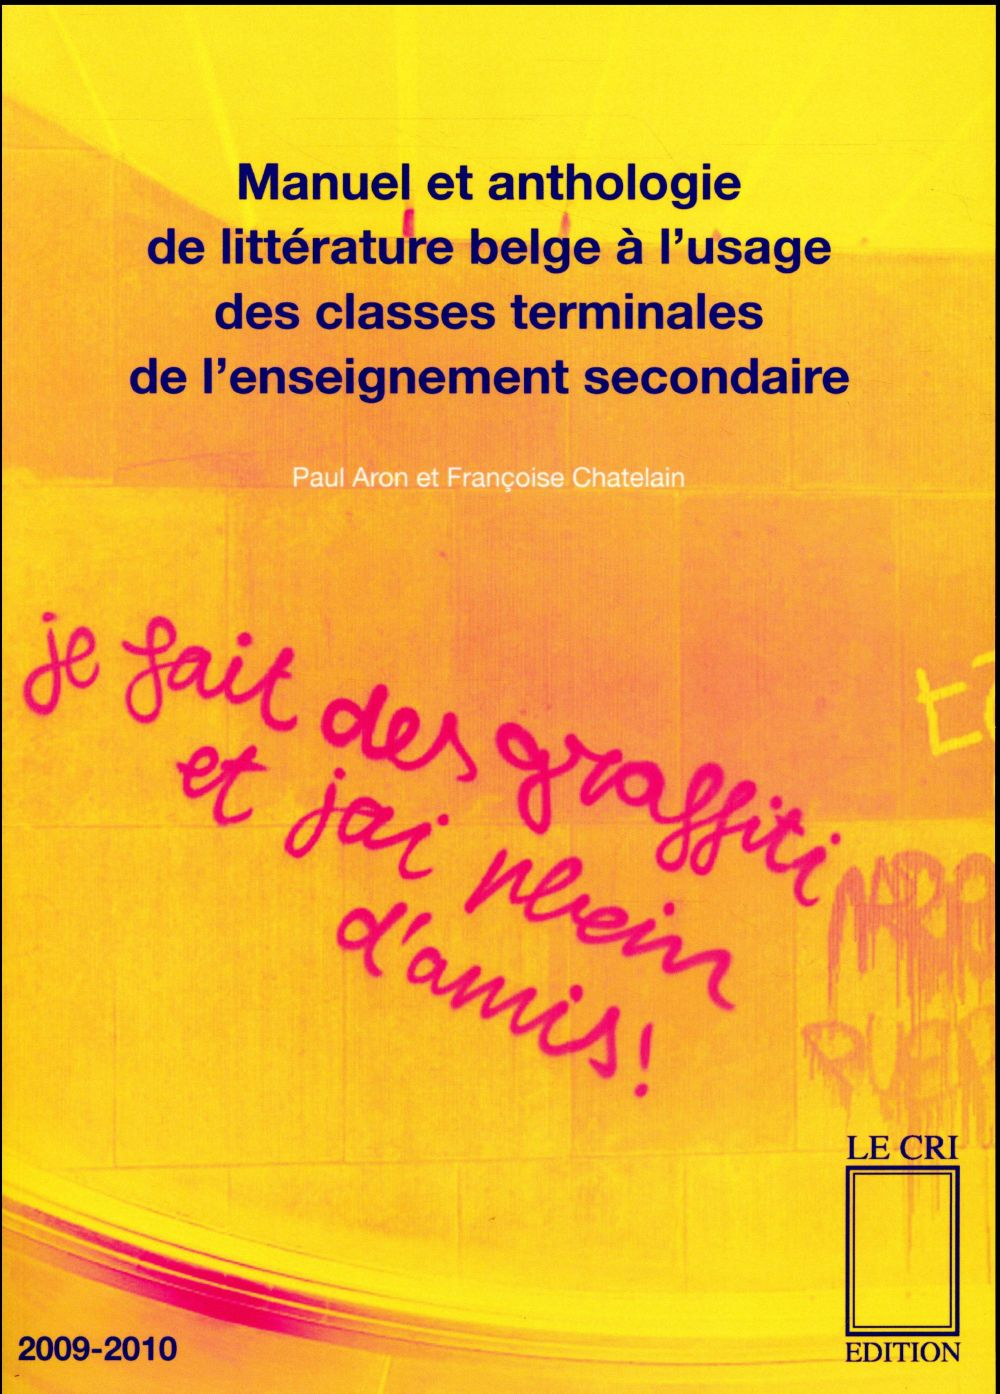 Manuel Et Anthologie De Litterature Belge A L'Usage Des Classes Terminales De L'Enseignement Secondaire